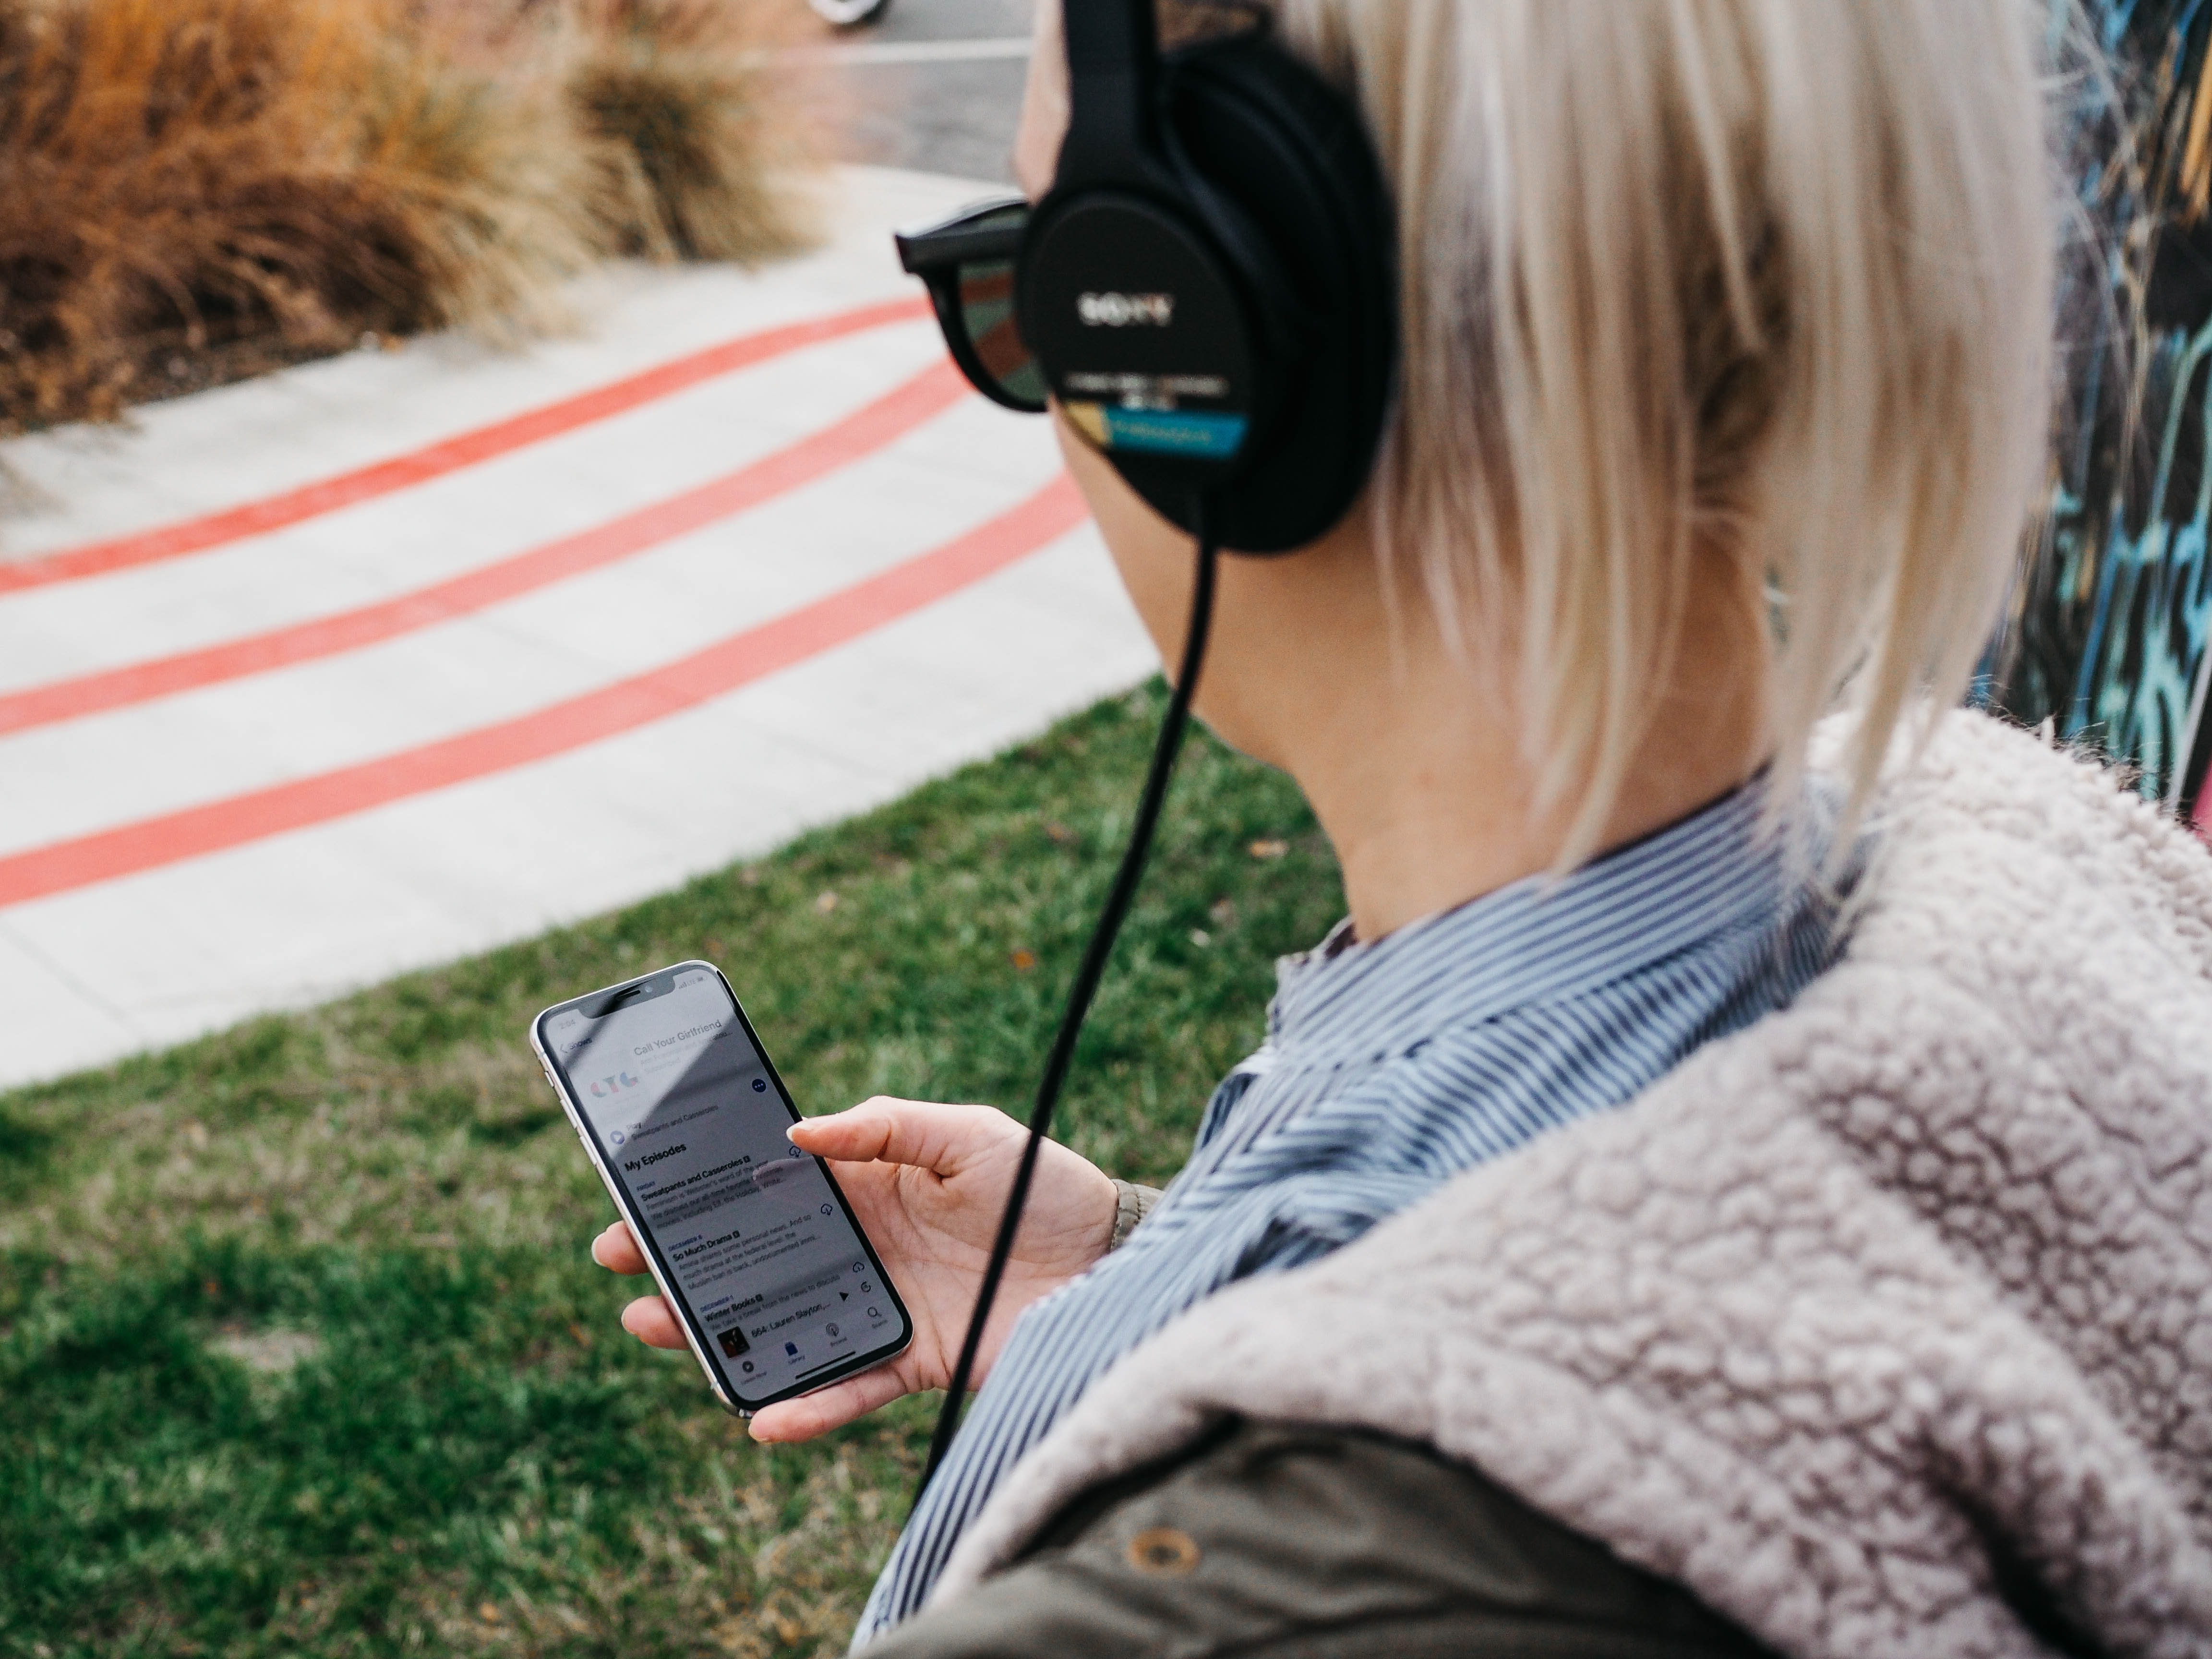 woman wearing black headphones while holding black Android smartphone